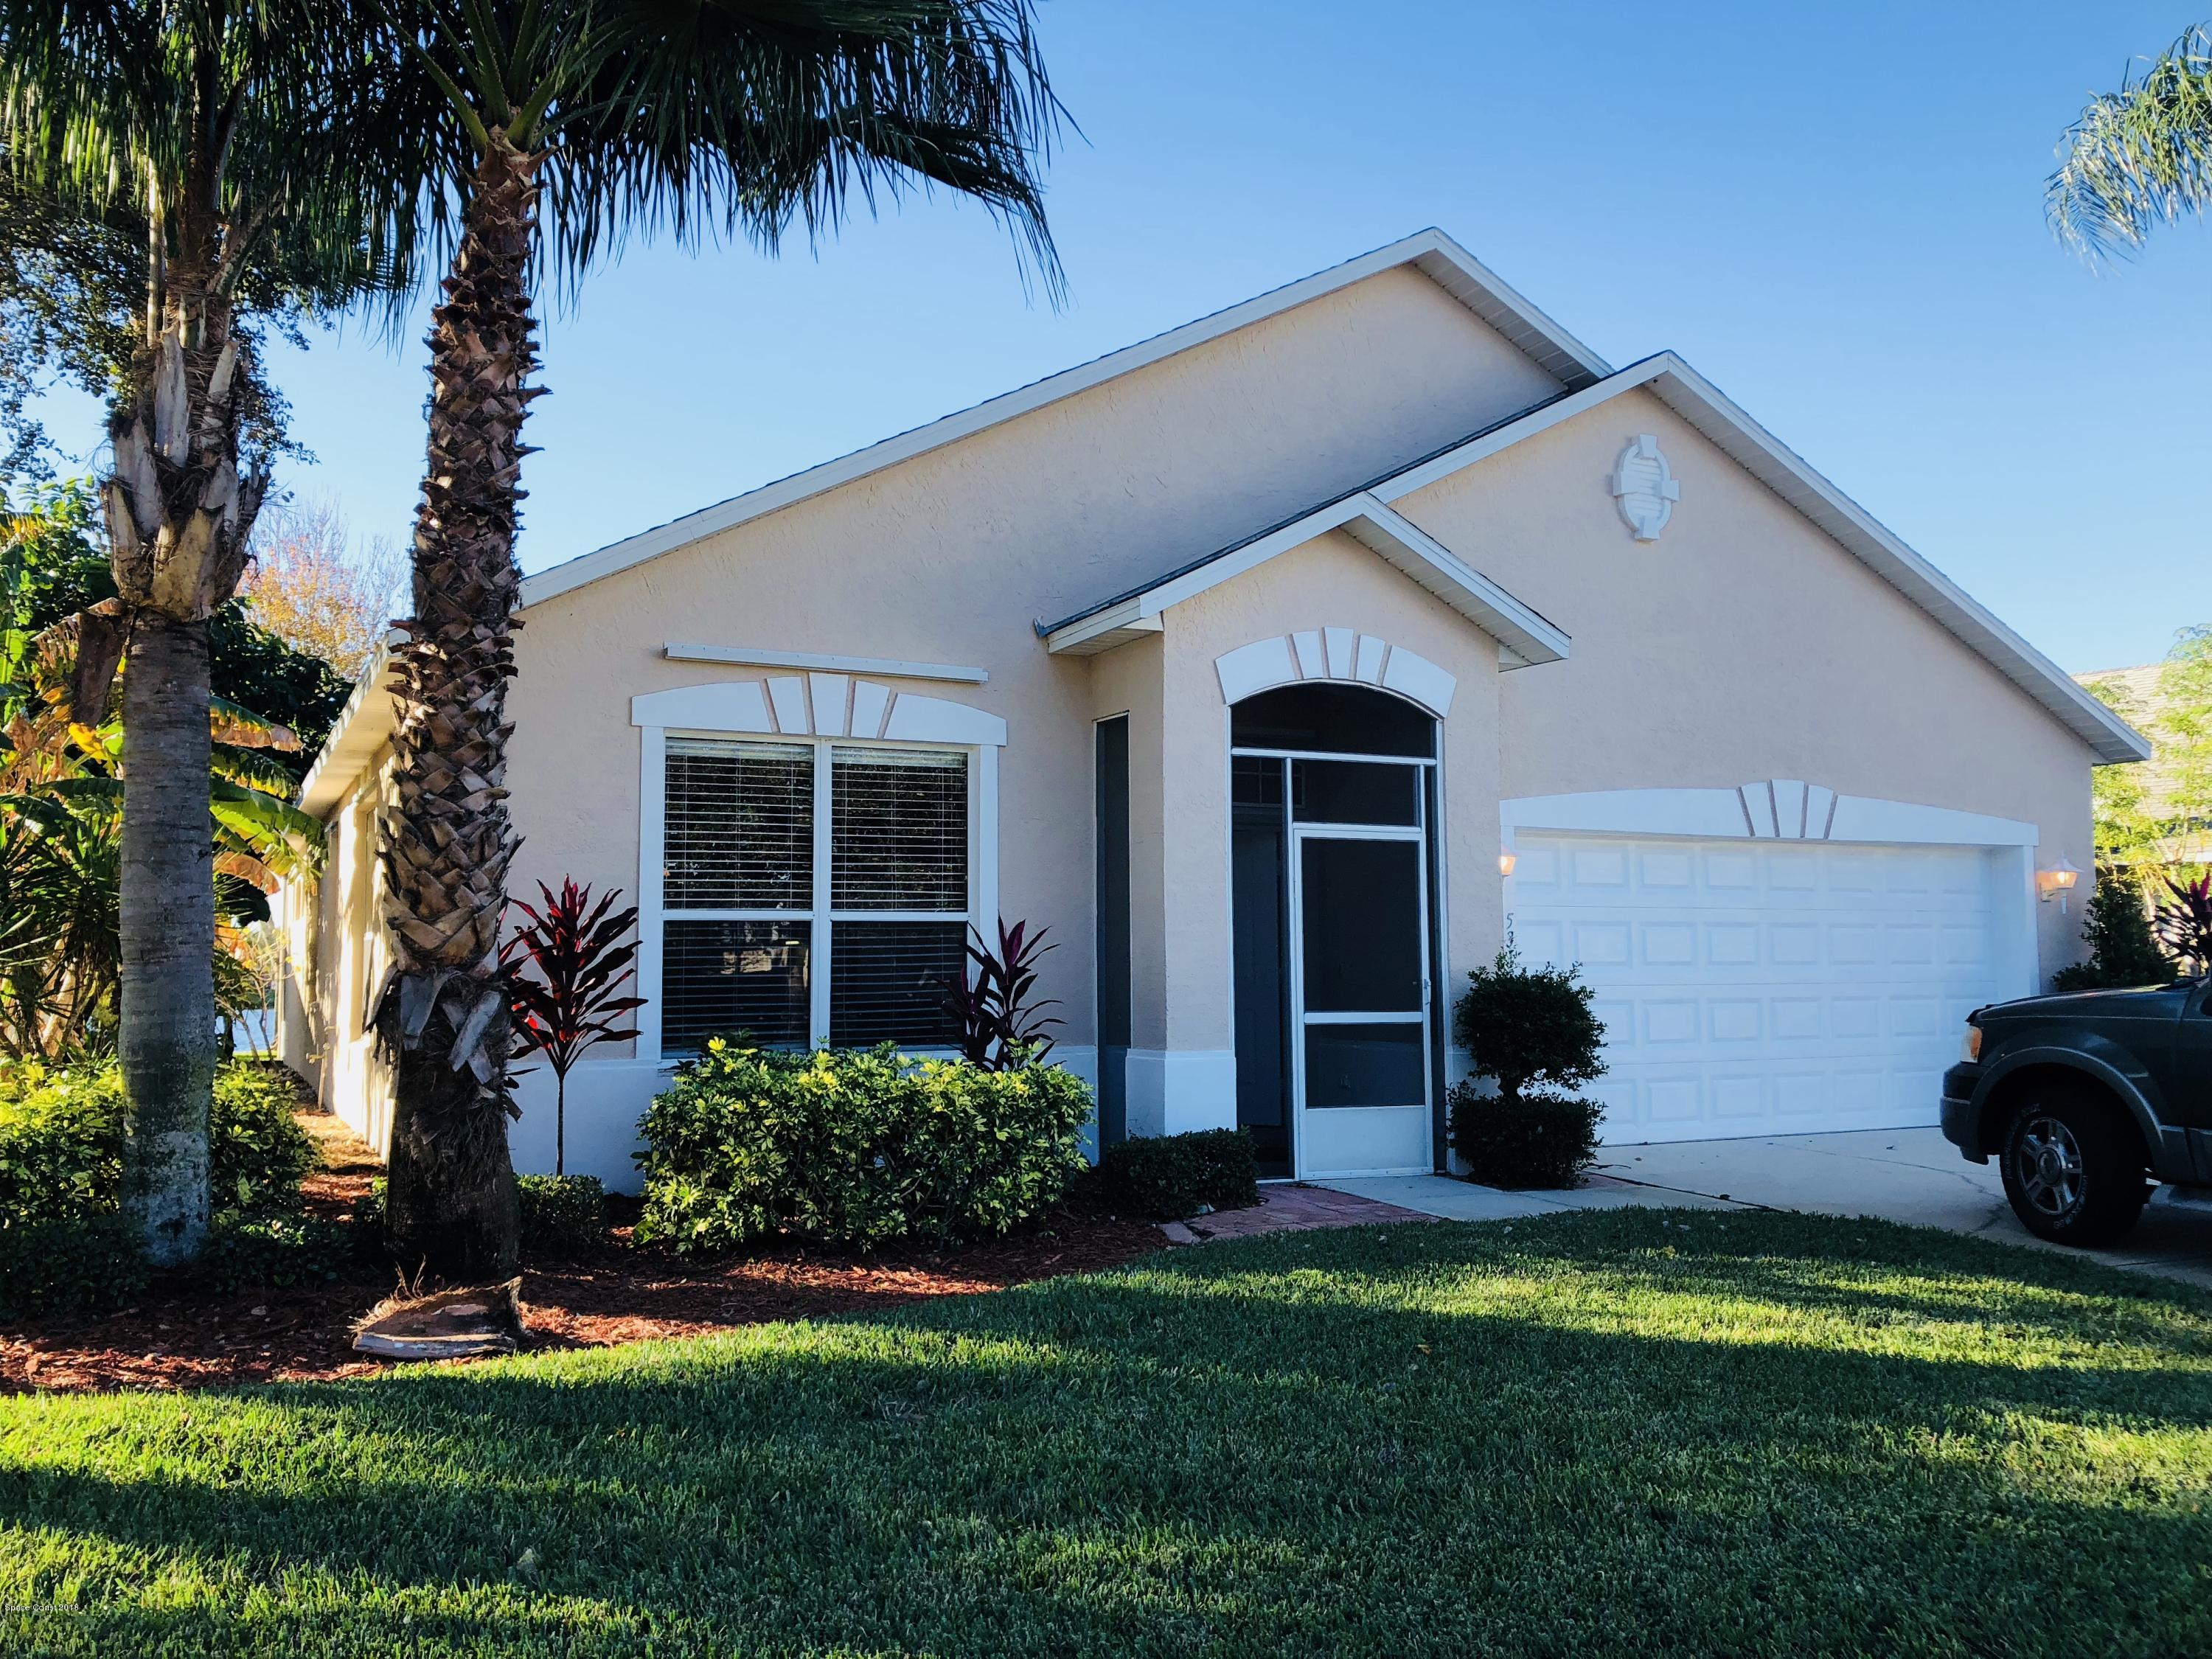 Single Family Homes for Sale at 5313 Outlook Melbourne, Florida 32940 United States